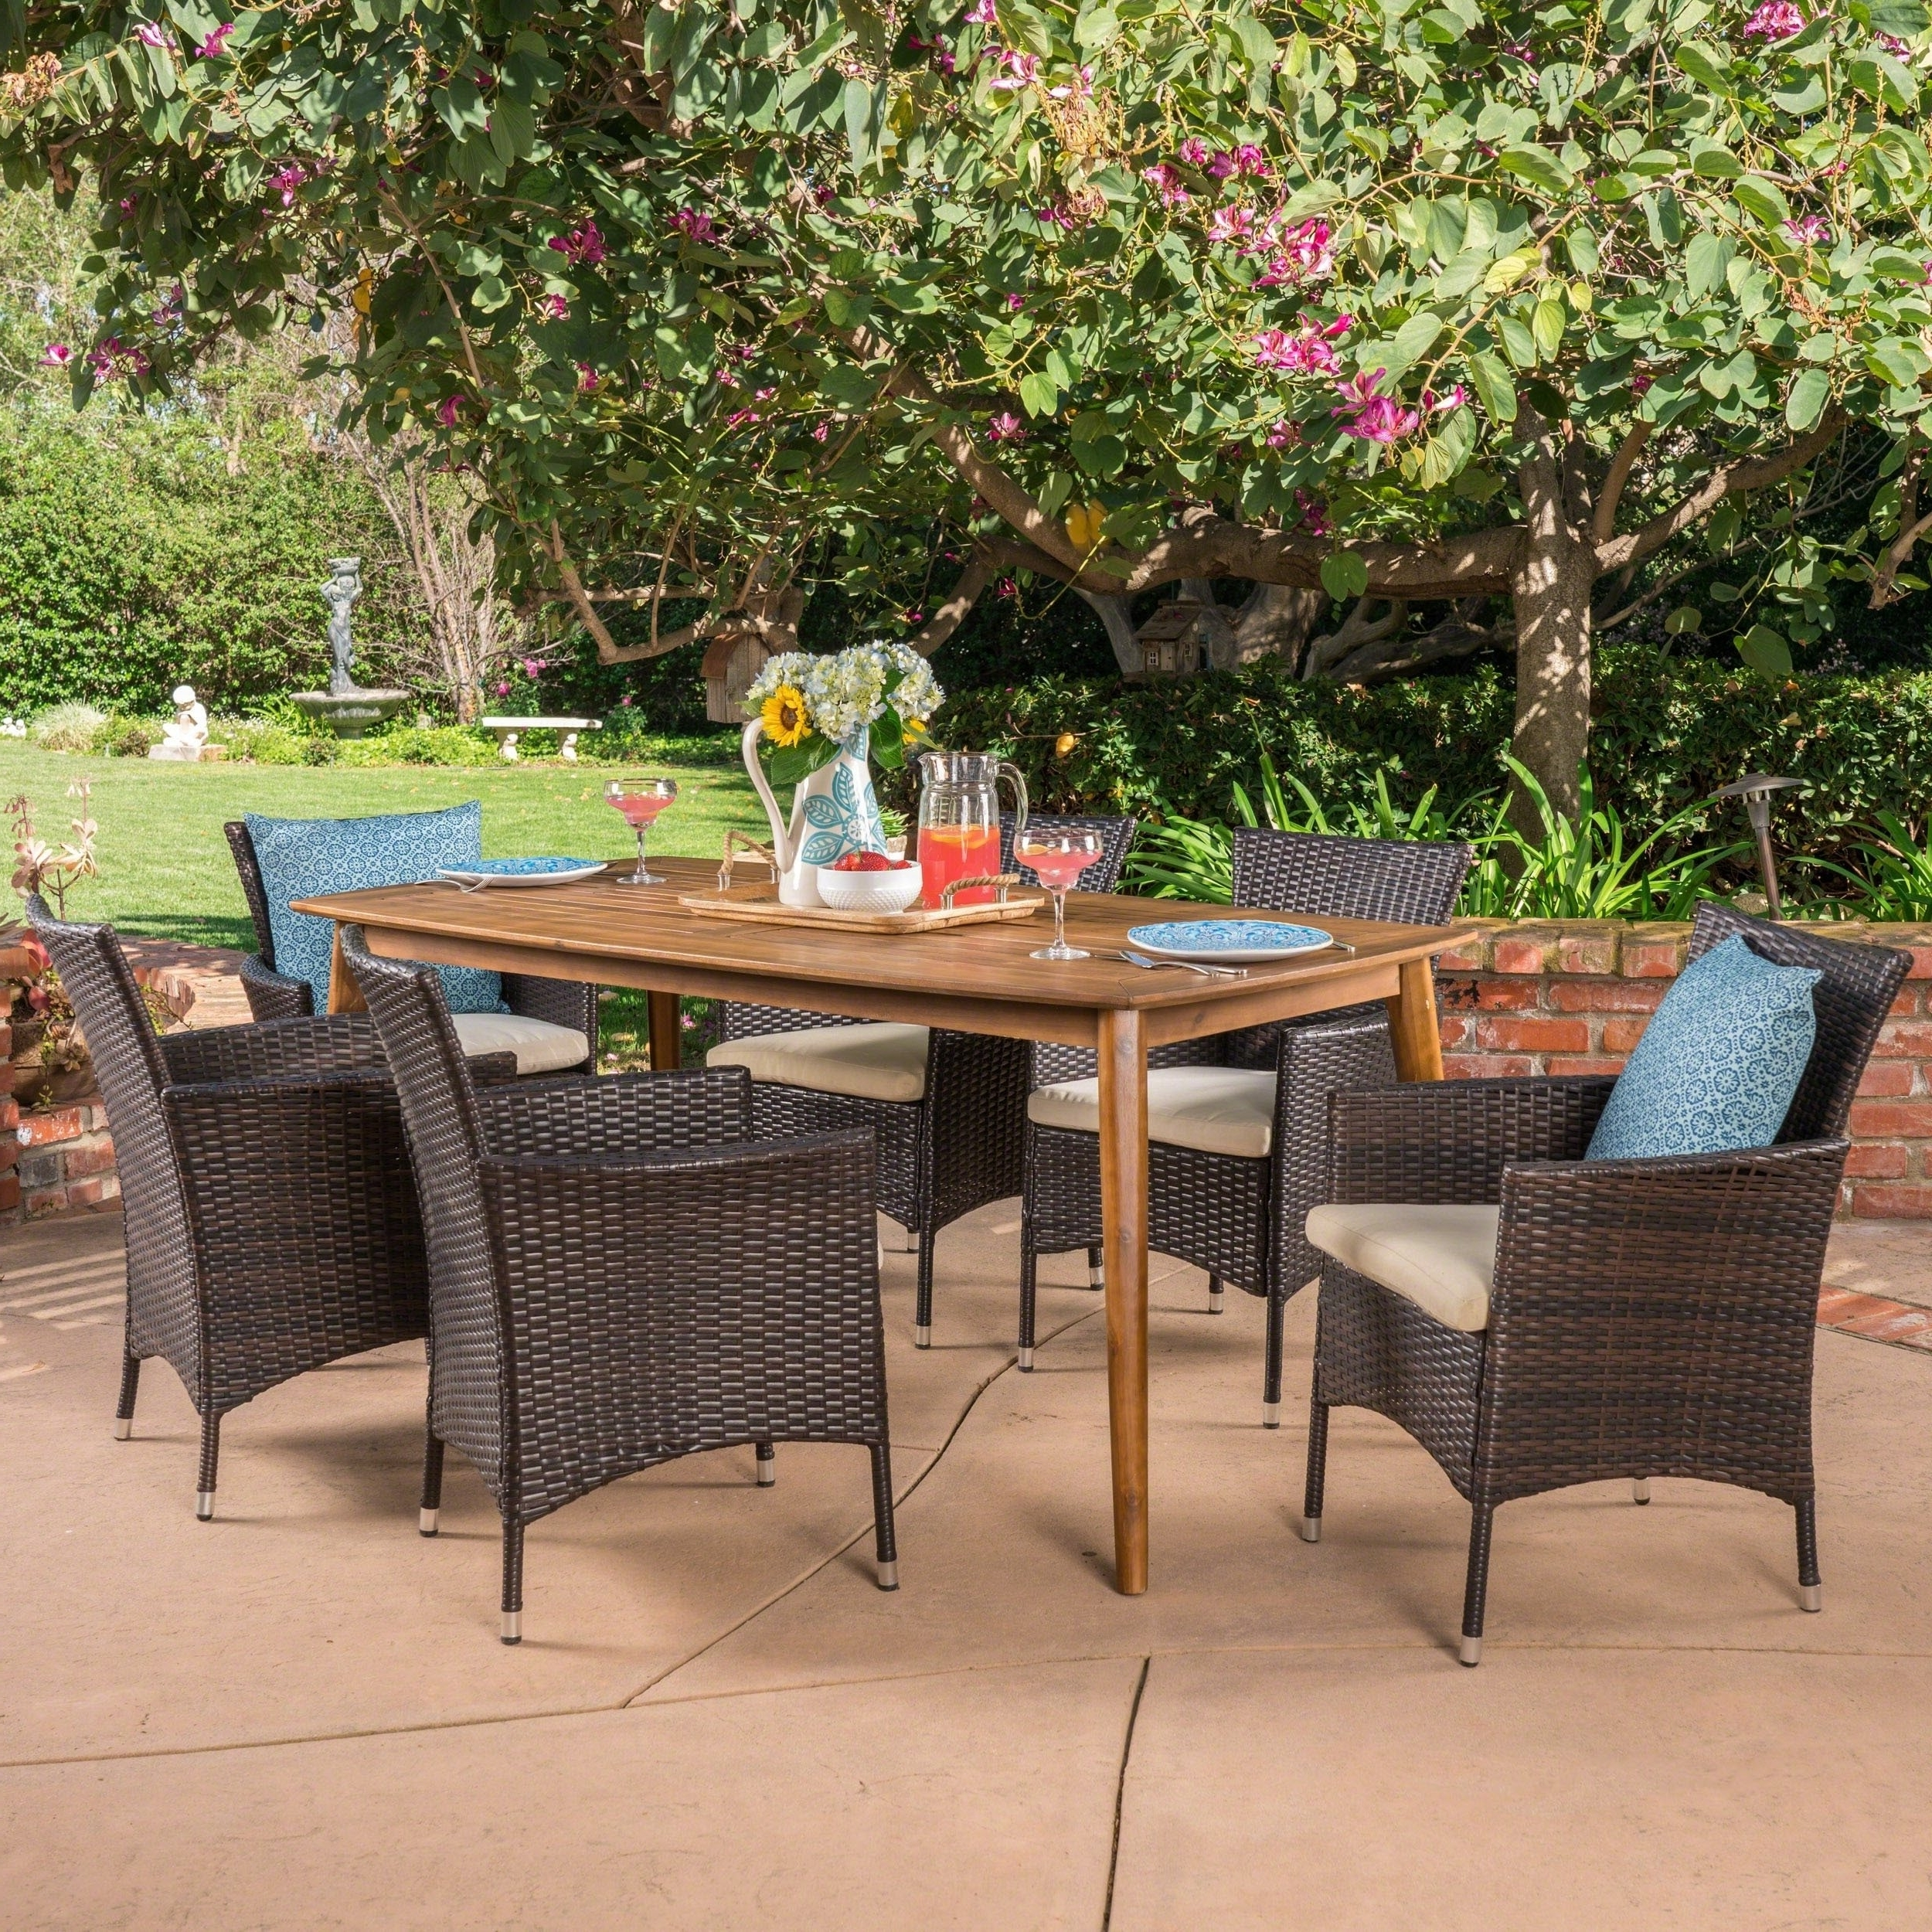 Shop Jaxon Outdoor 7 Piece Multibrown Pe Wicker Dining Set With Throughout Most Current Jaxon Grey 6 Piece Rectangle Extension Dining Sets With Bench & Wood Chairs (View 8 of 25)